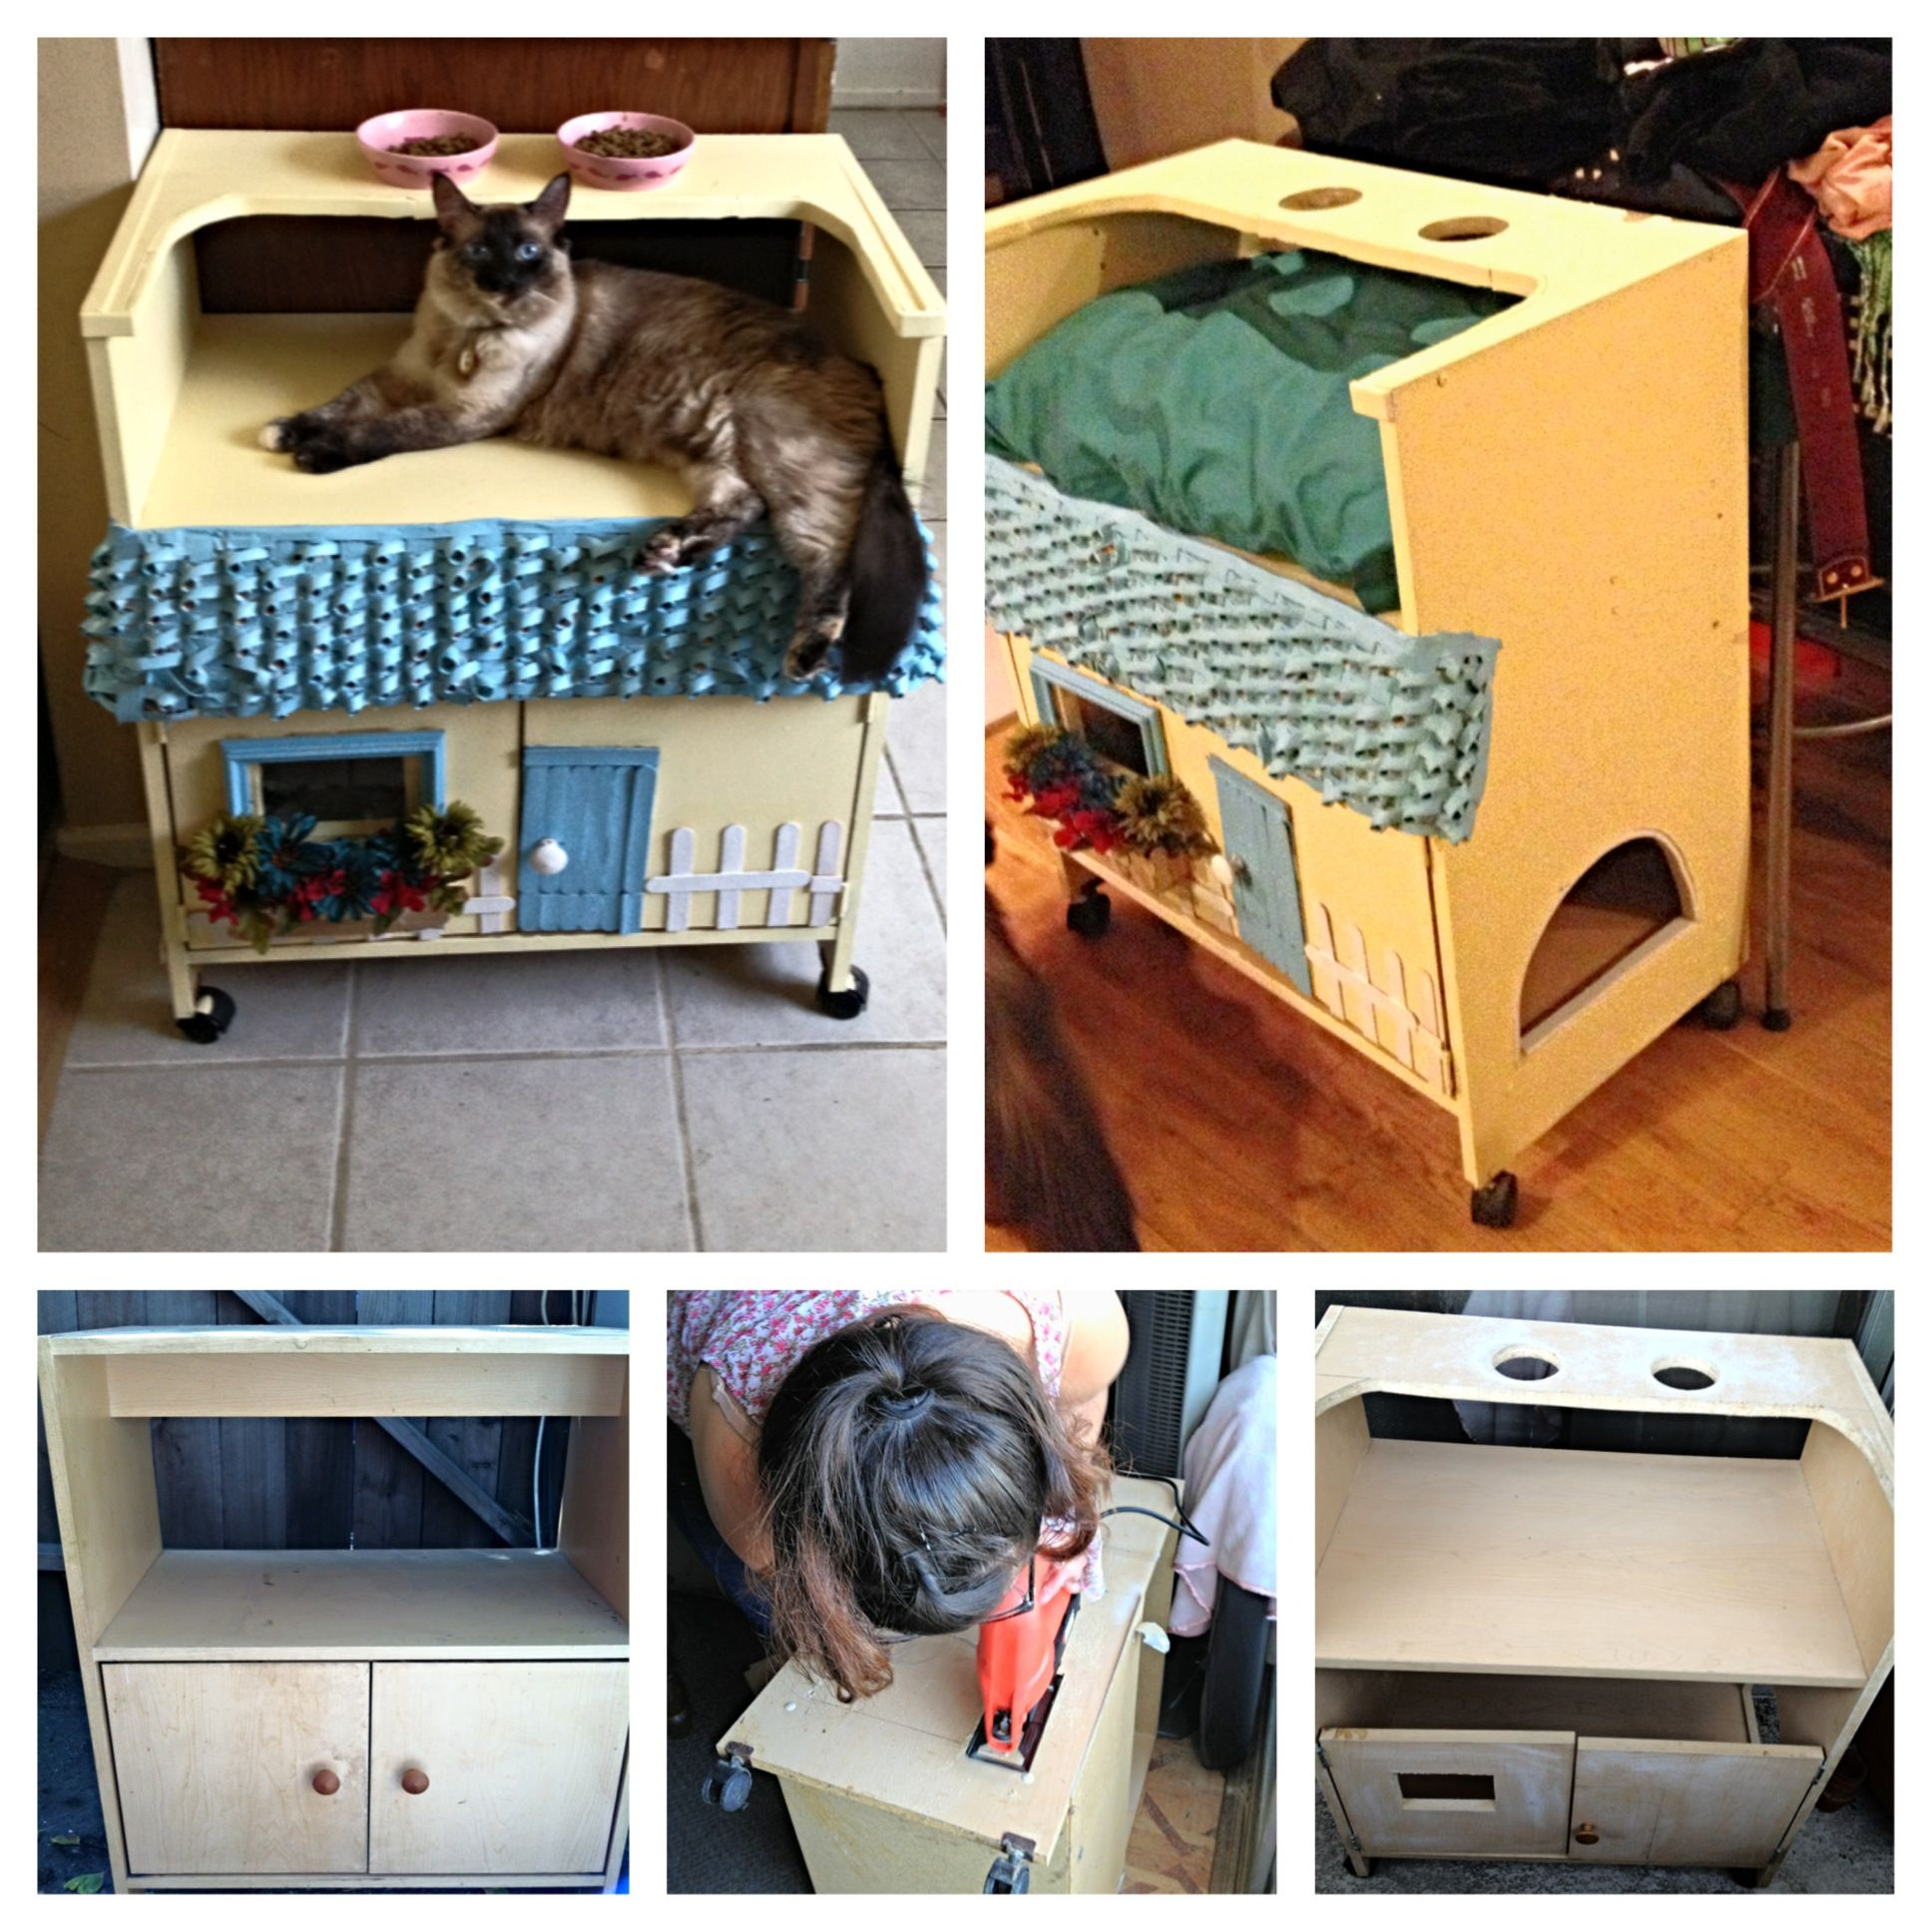 Decorative Litter Box Covers Diy Cat Furniture Litter Box Cover And Feeding Area Diy Style